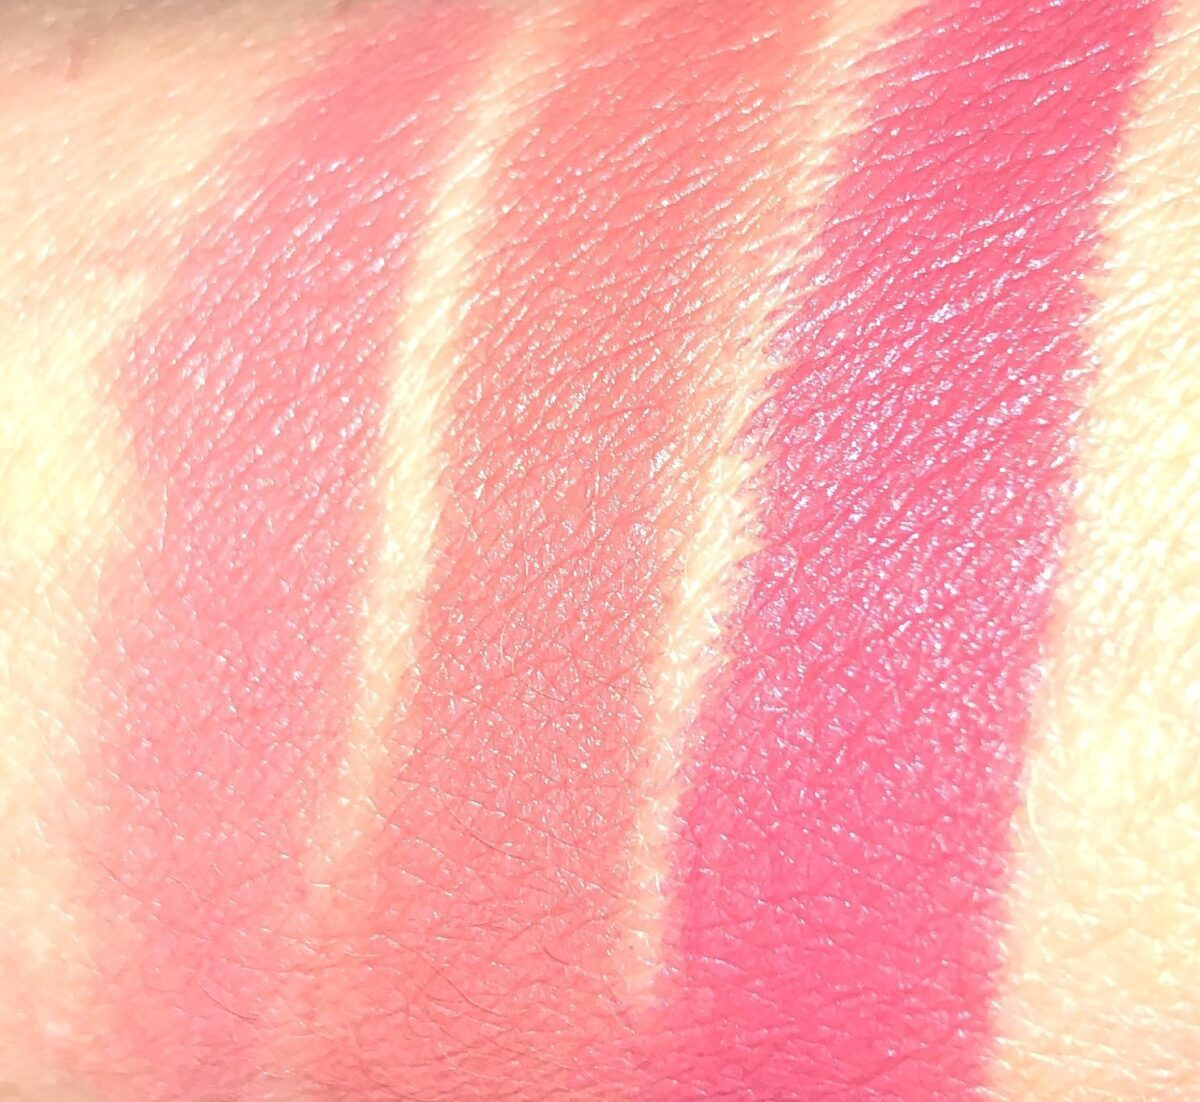 LOVE FILTER BRIDAL LIPSTICK SWATCHES: L TO R: WEDDING BELLS, MRS. KISSES, FIRST DANCE